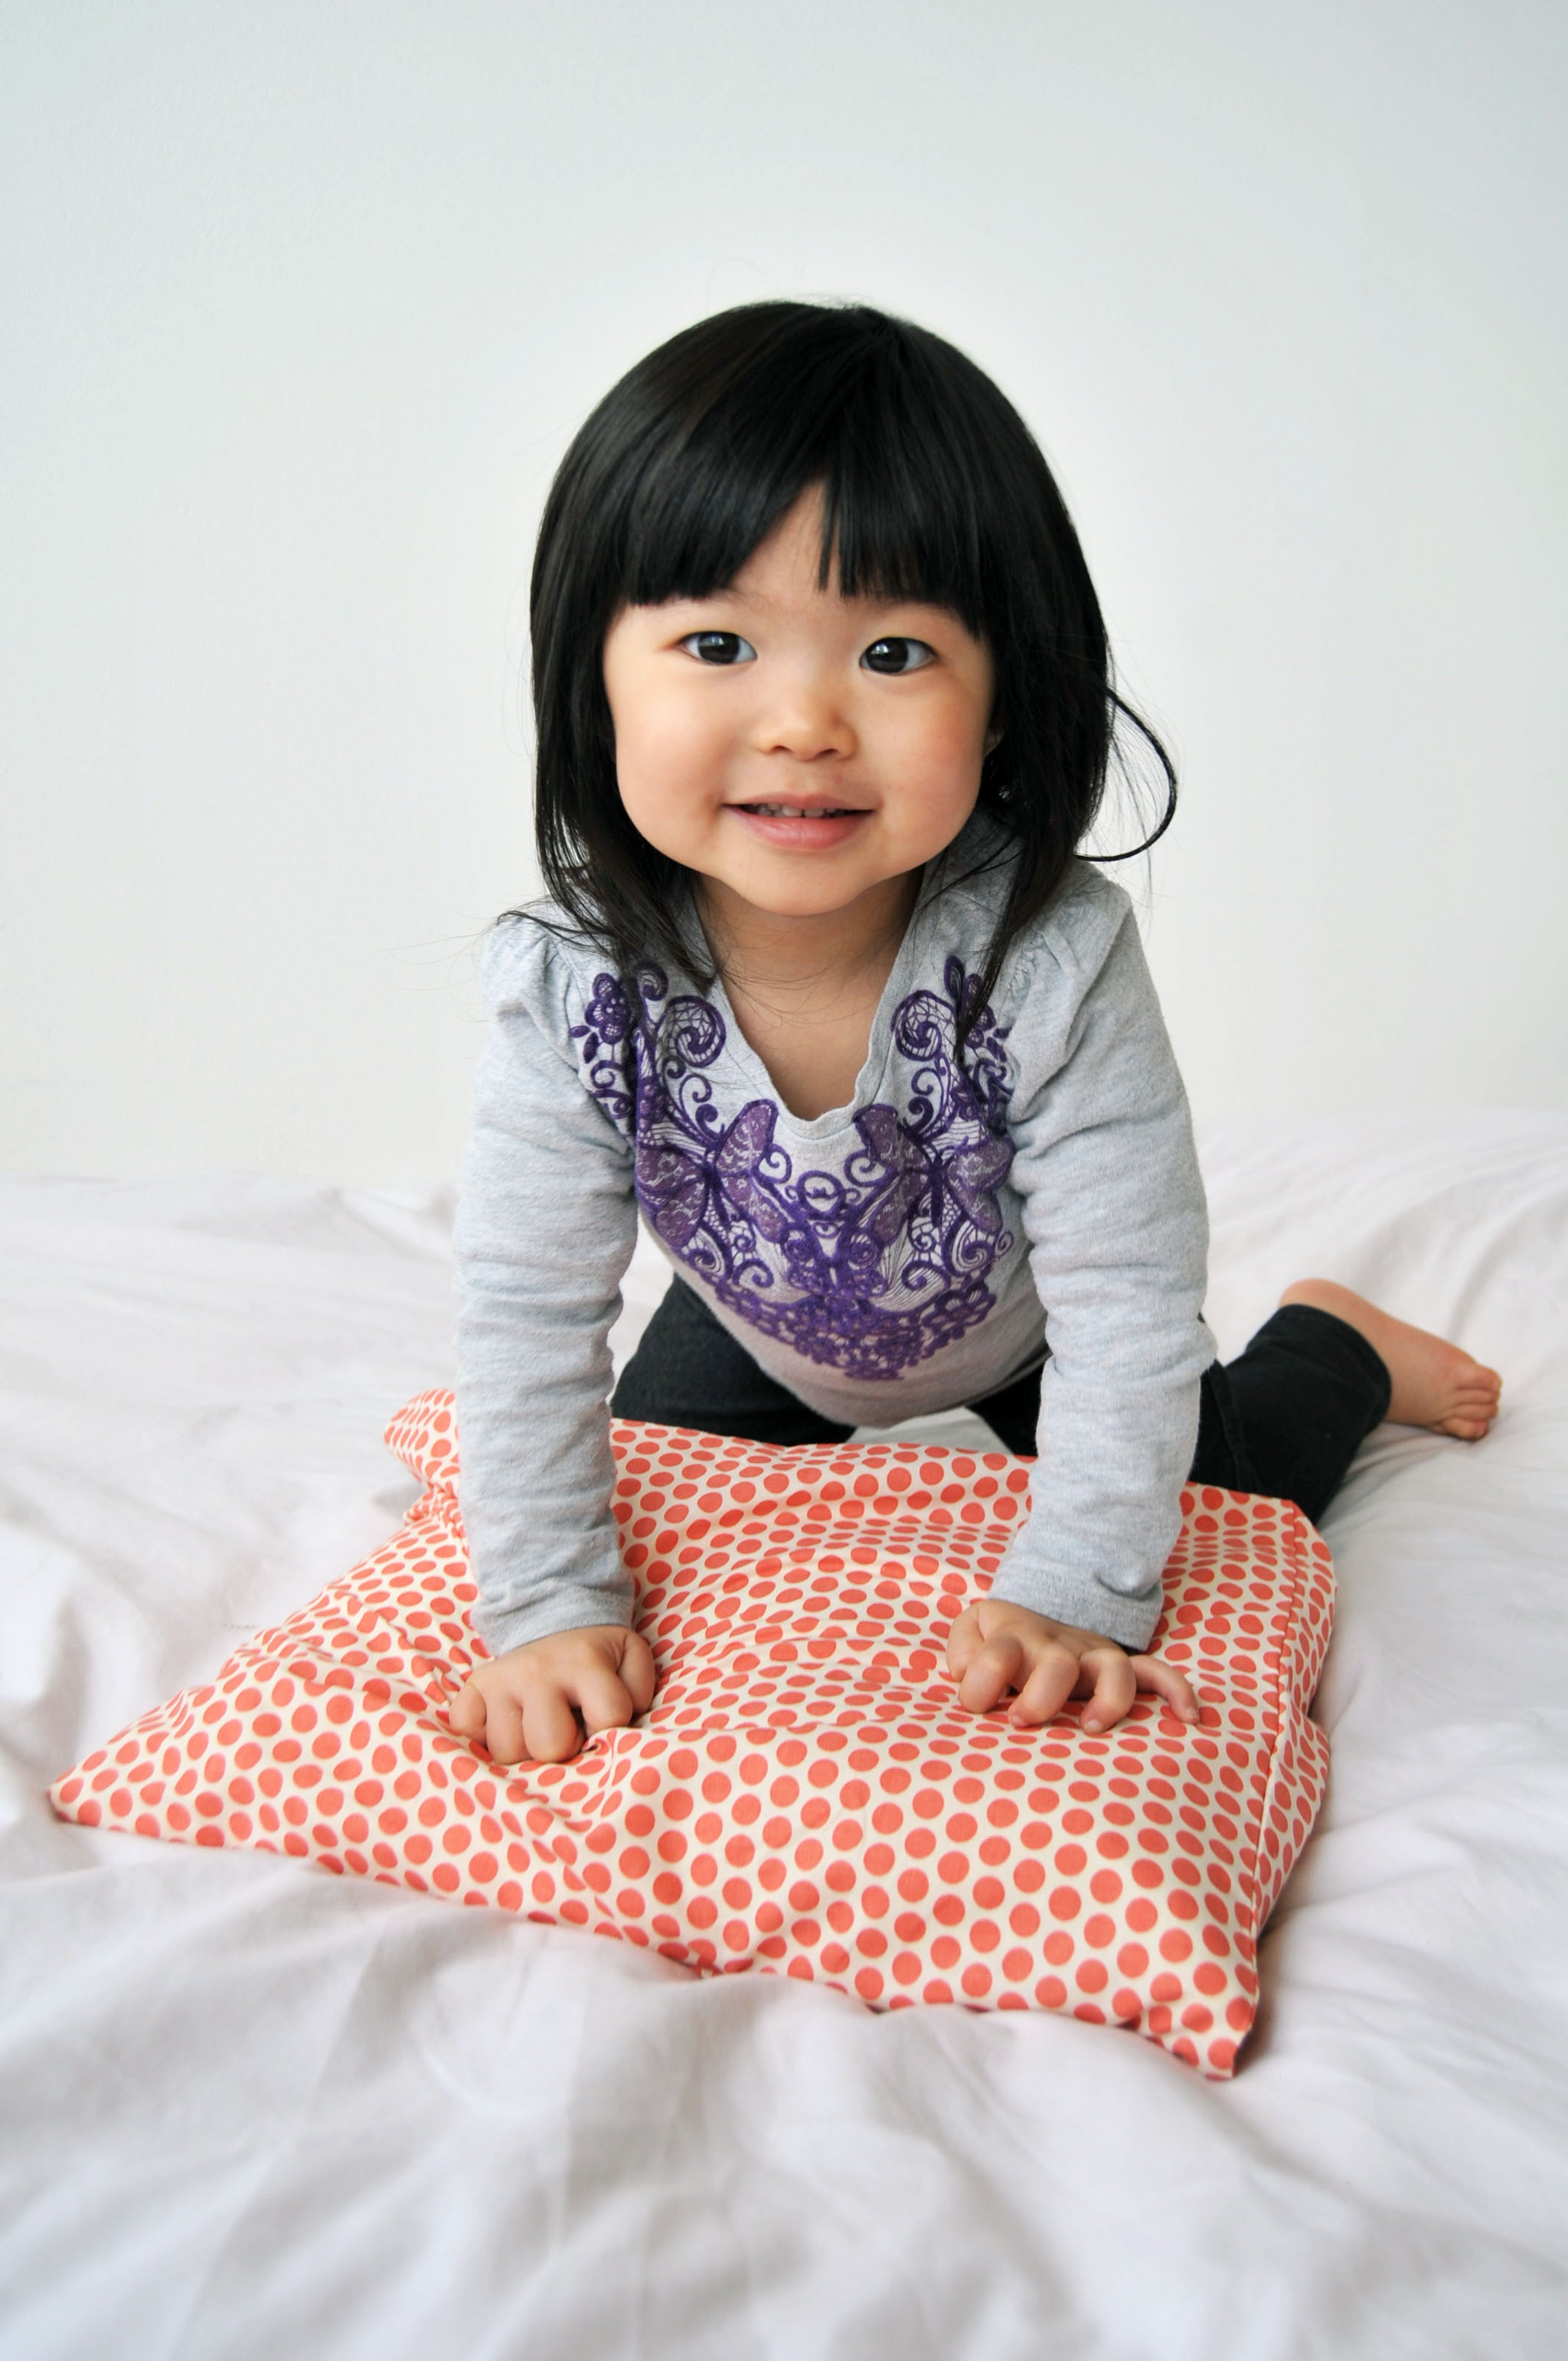 Toddler with Toddler pillow